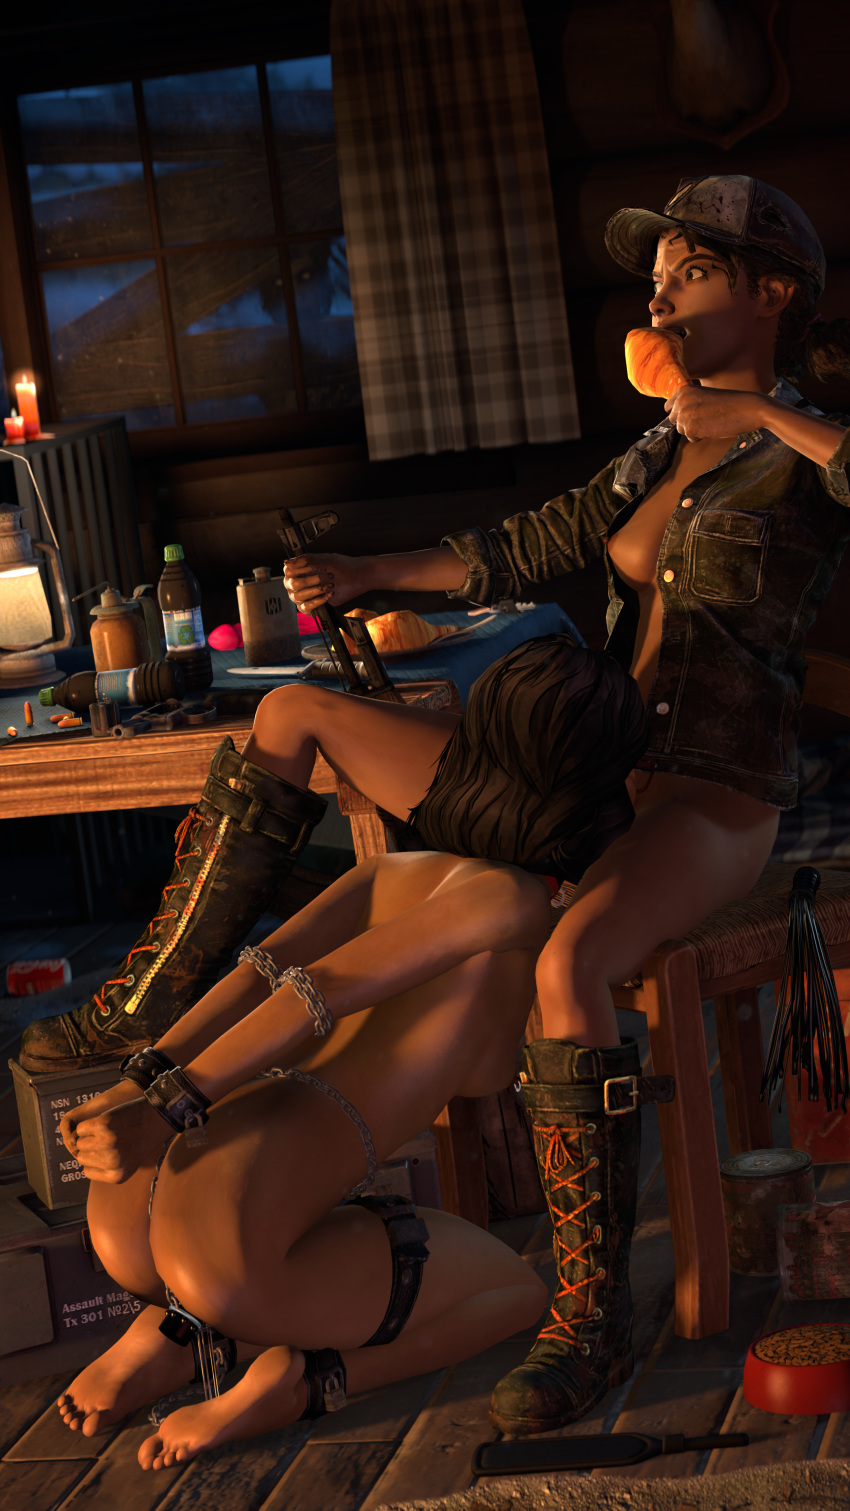 walking dead nude game the Wreck it ralph vanellope nude